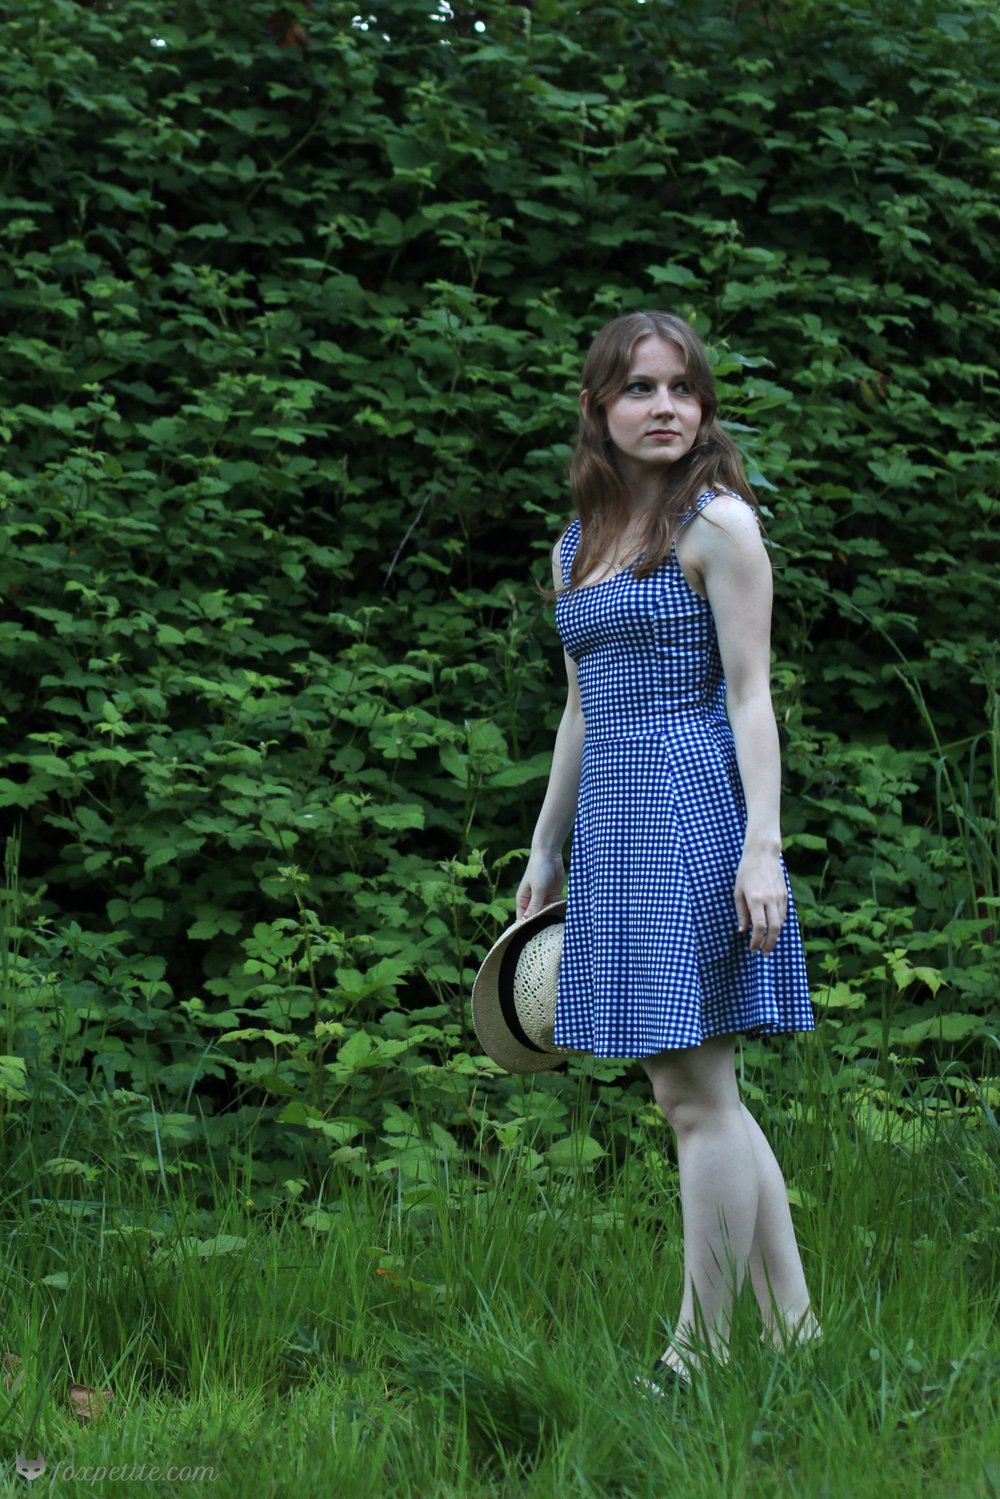 Fox Petite - H&M Jersey Gingham Blue Dress and Straw Hat full view - petite friendly sizing!